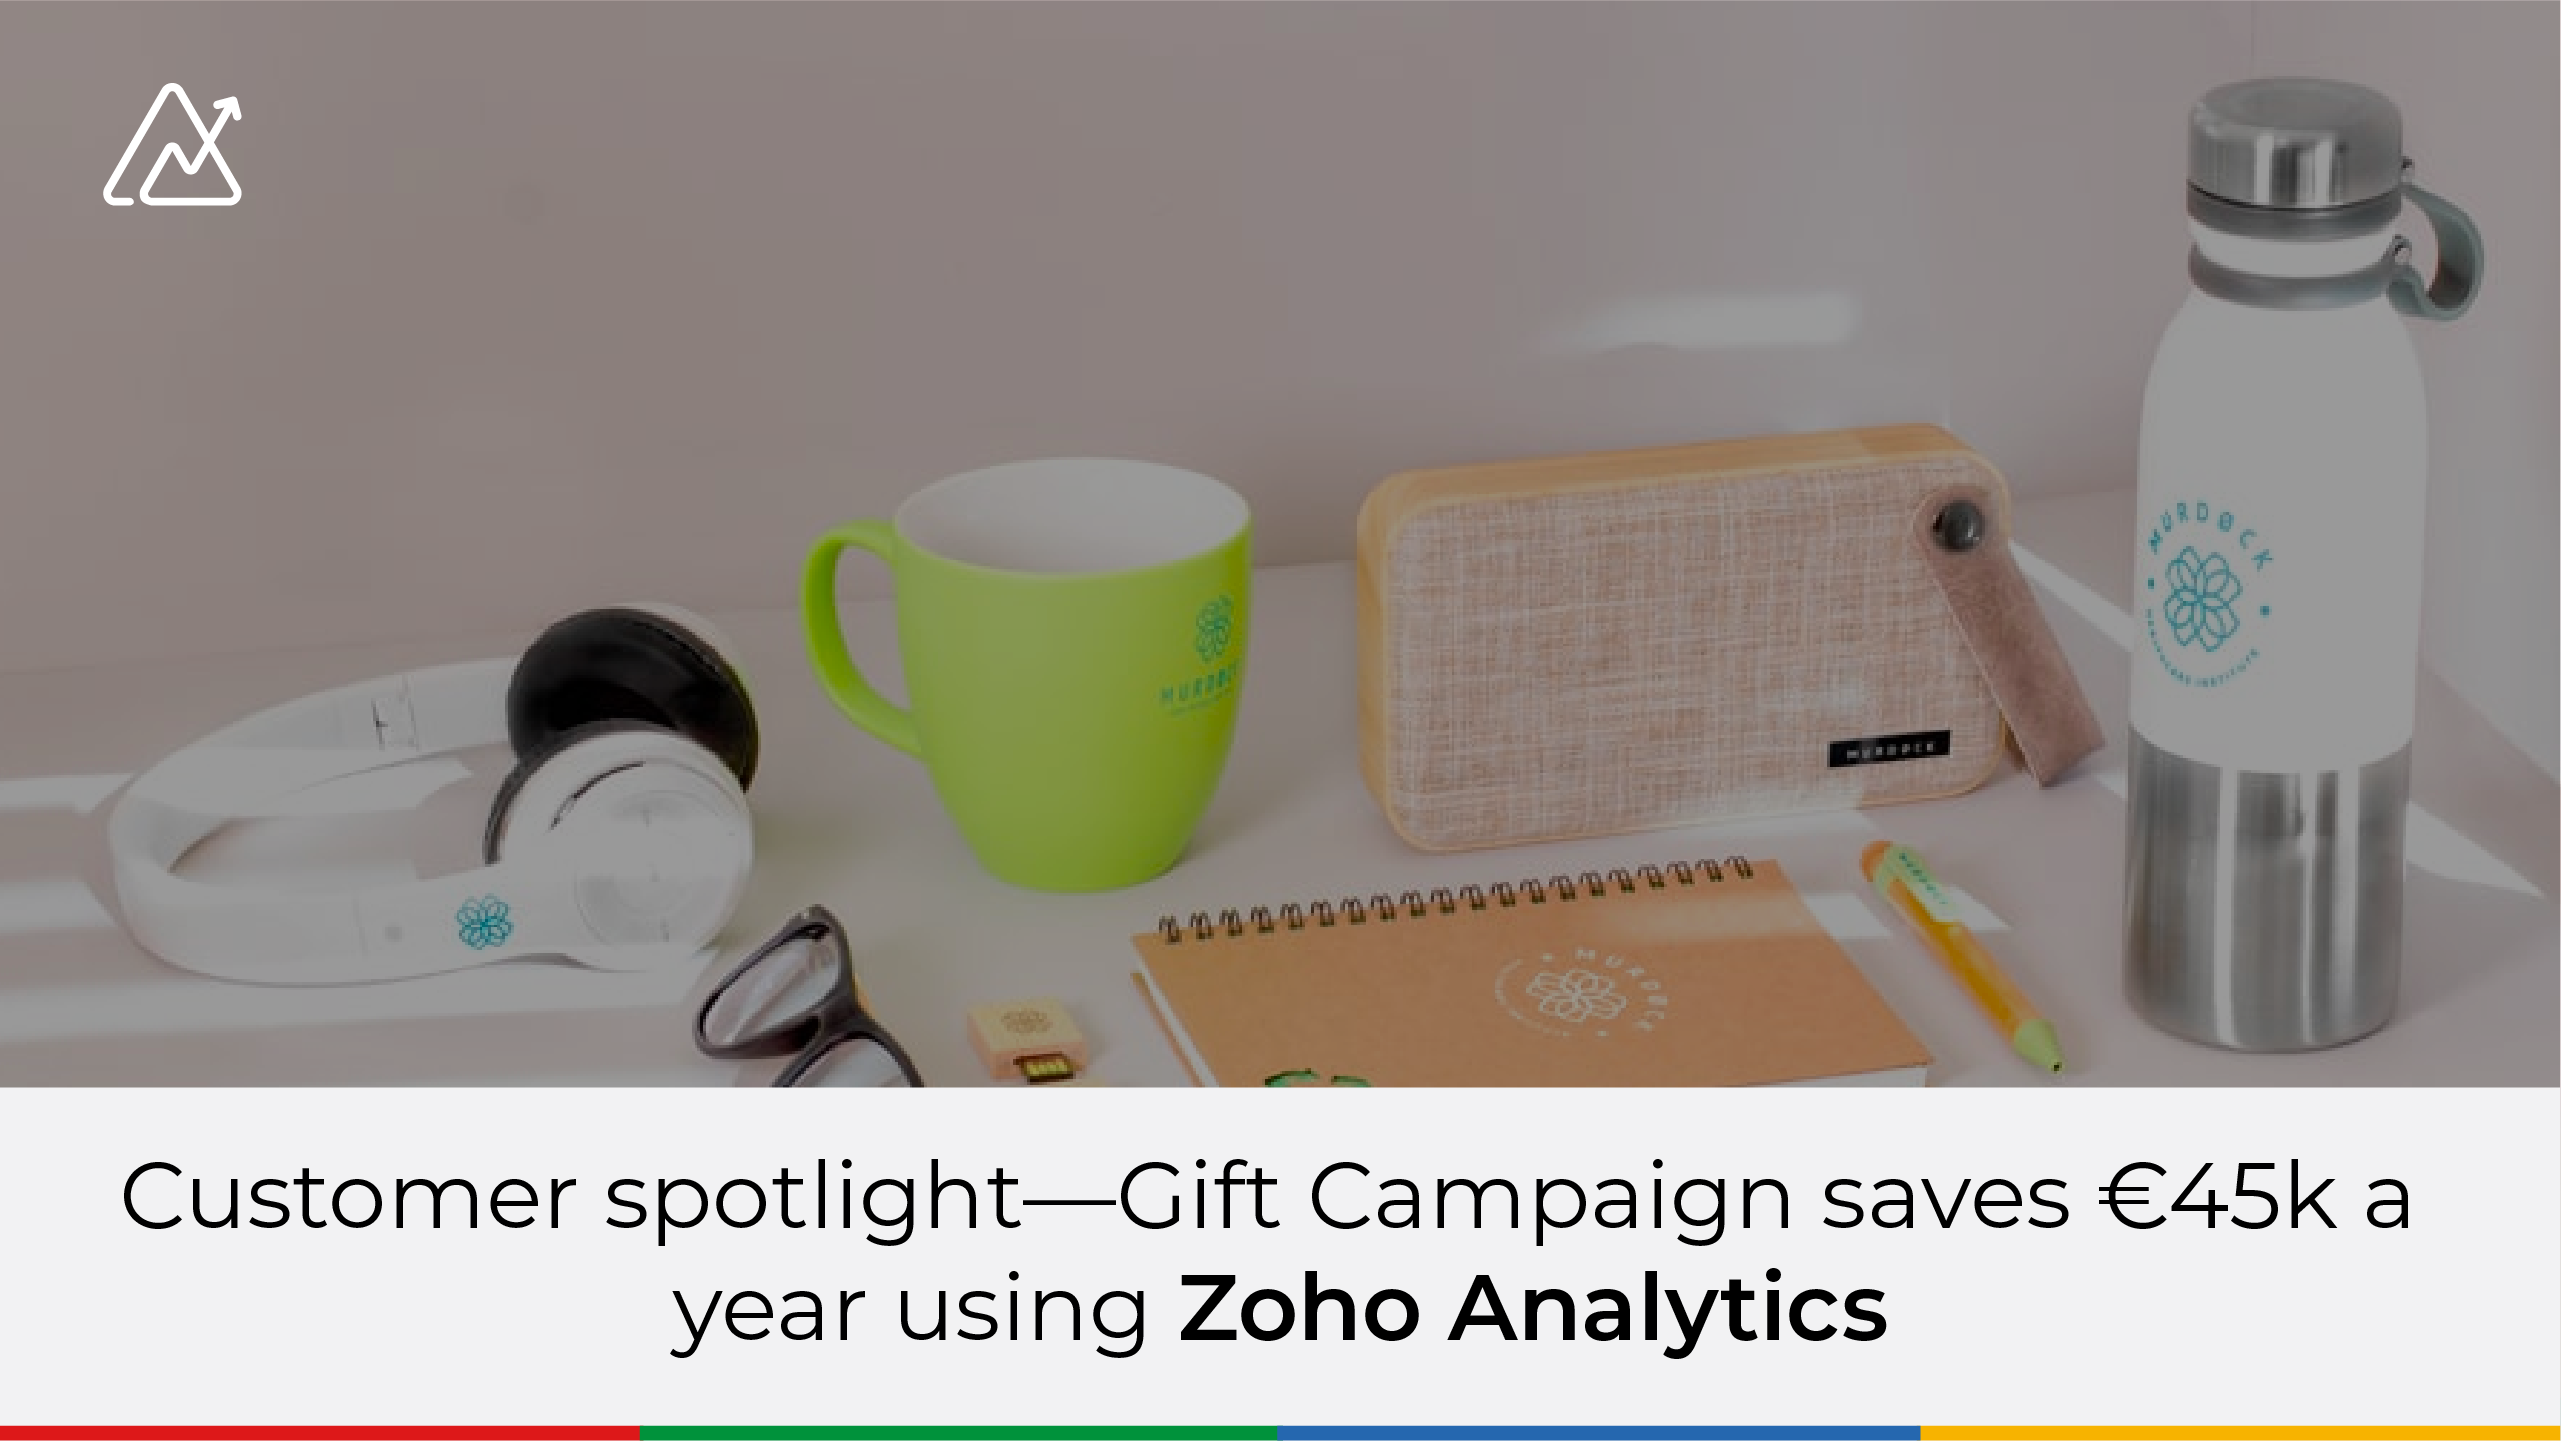 Customer spotlight—Gift Campaign saves €45k a year using Zoho Analytics